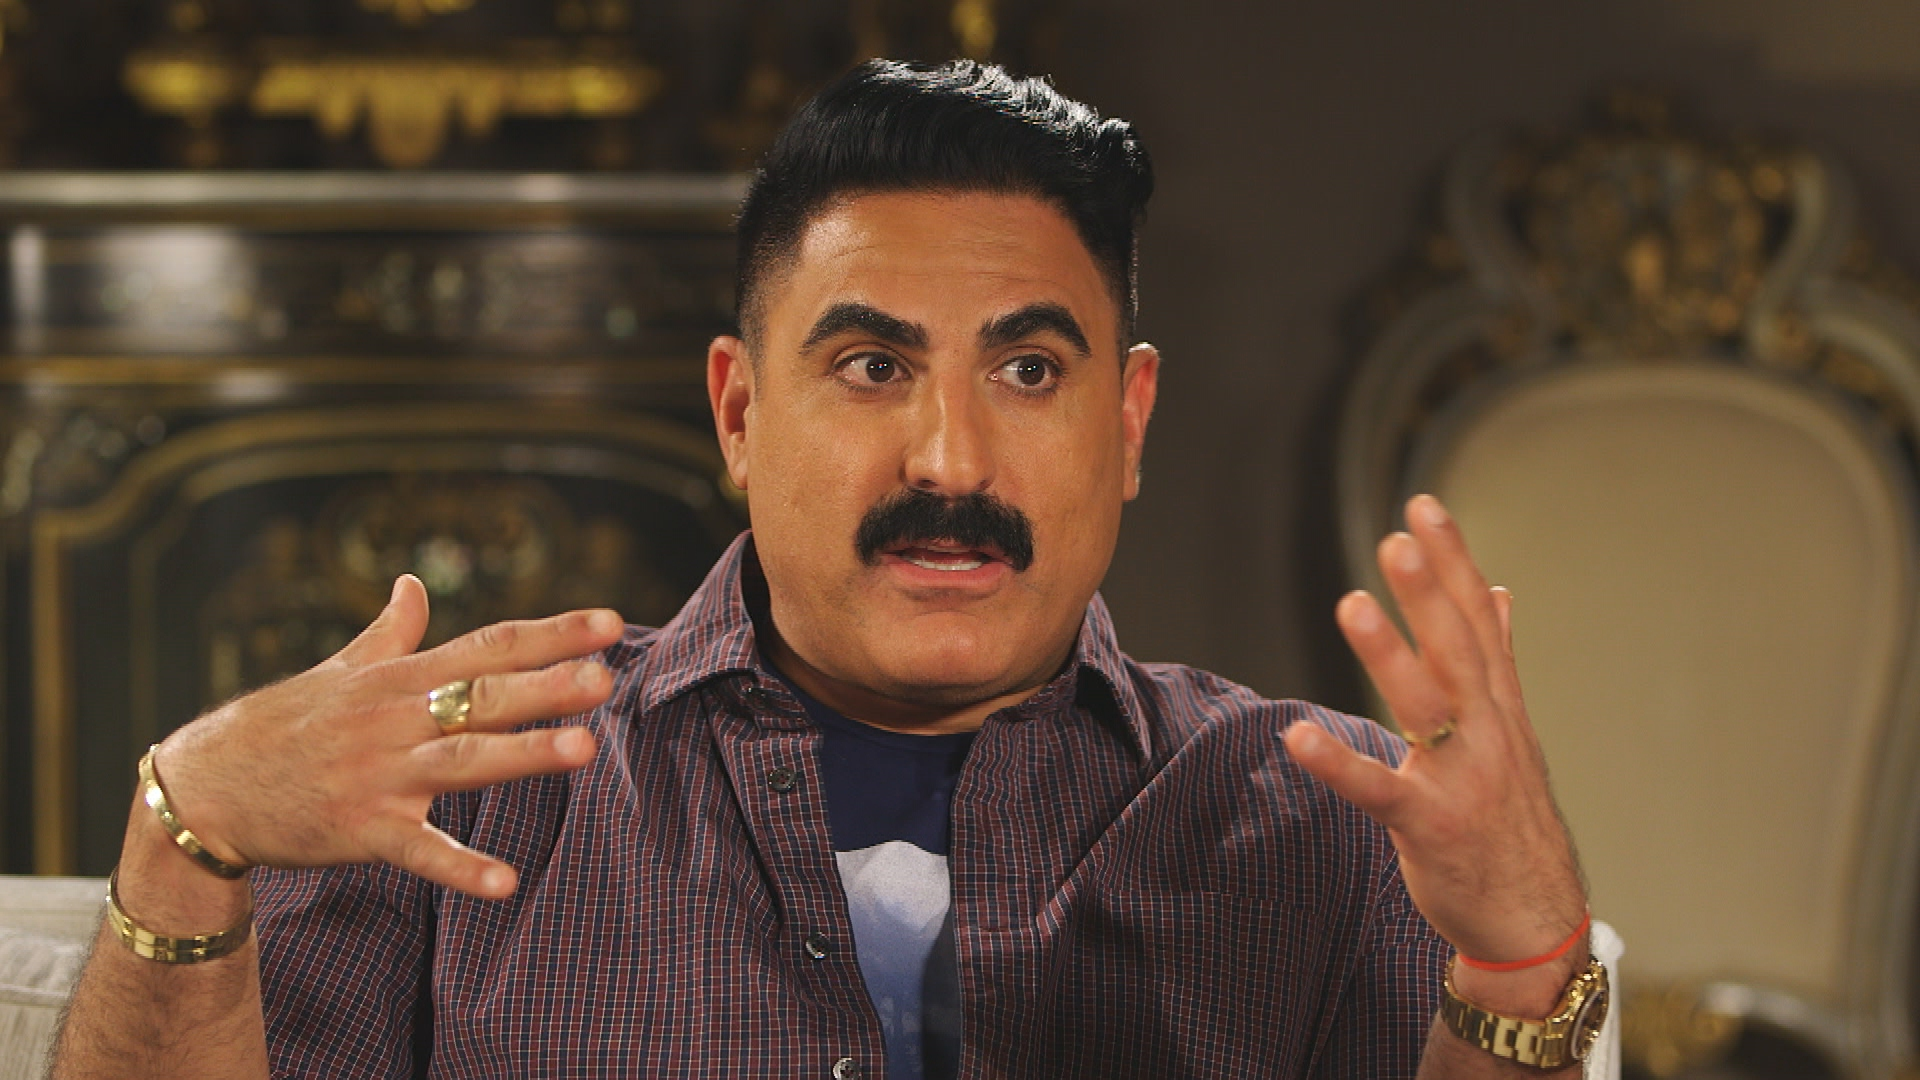 #Shahs After Show: Reza on Canceling His Wedding